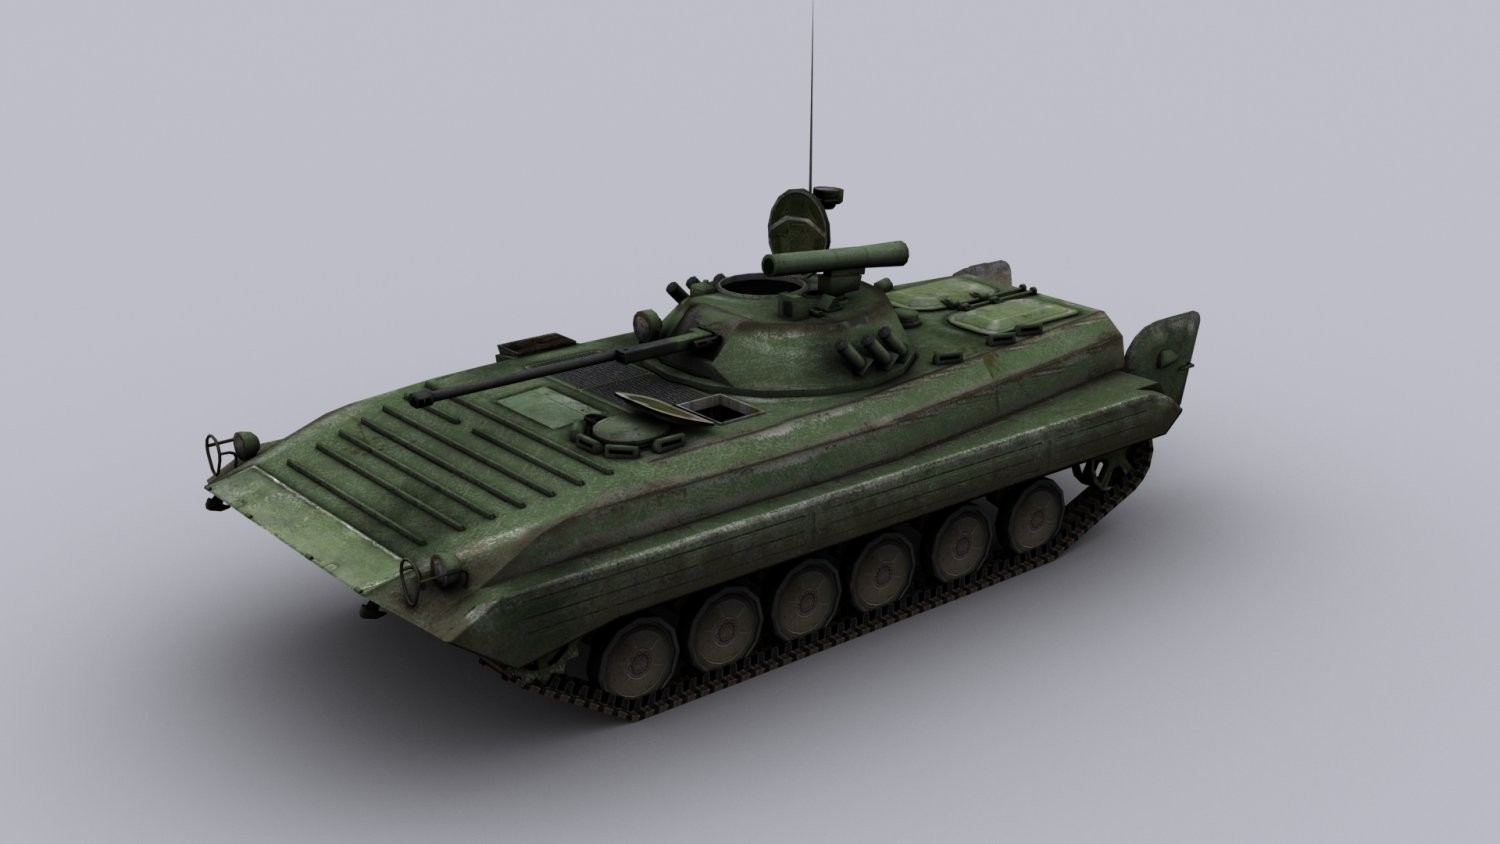 infantry_fighting_vehicle_3d_model_c4d_max_obj_fbx_ma_lwo_3ds_3dm_stl_1483577_o.jpg